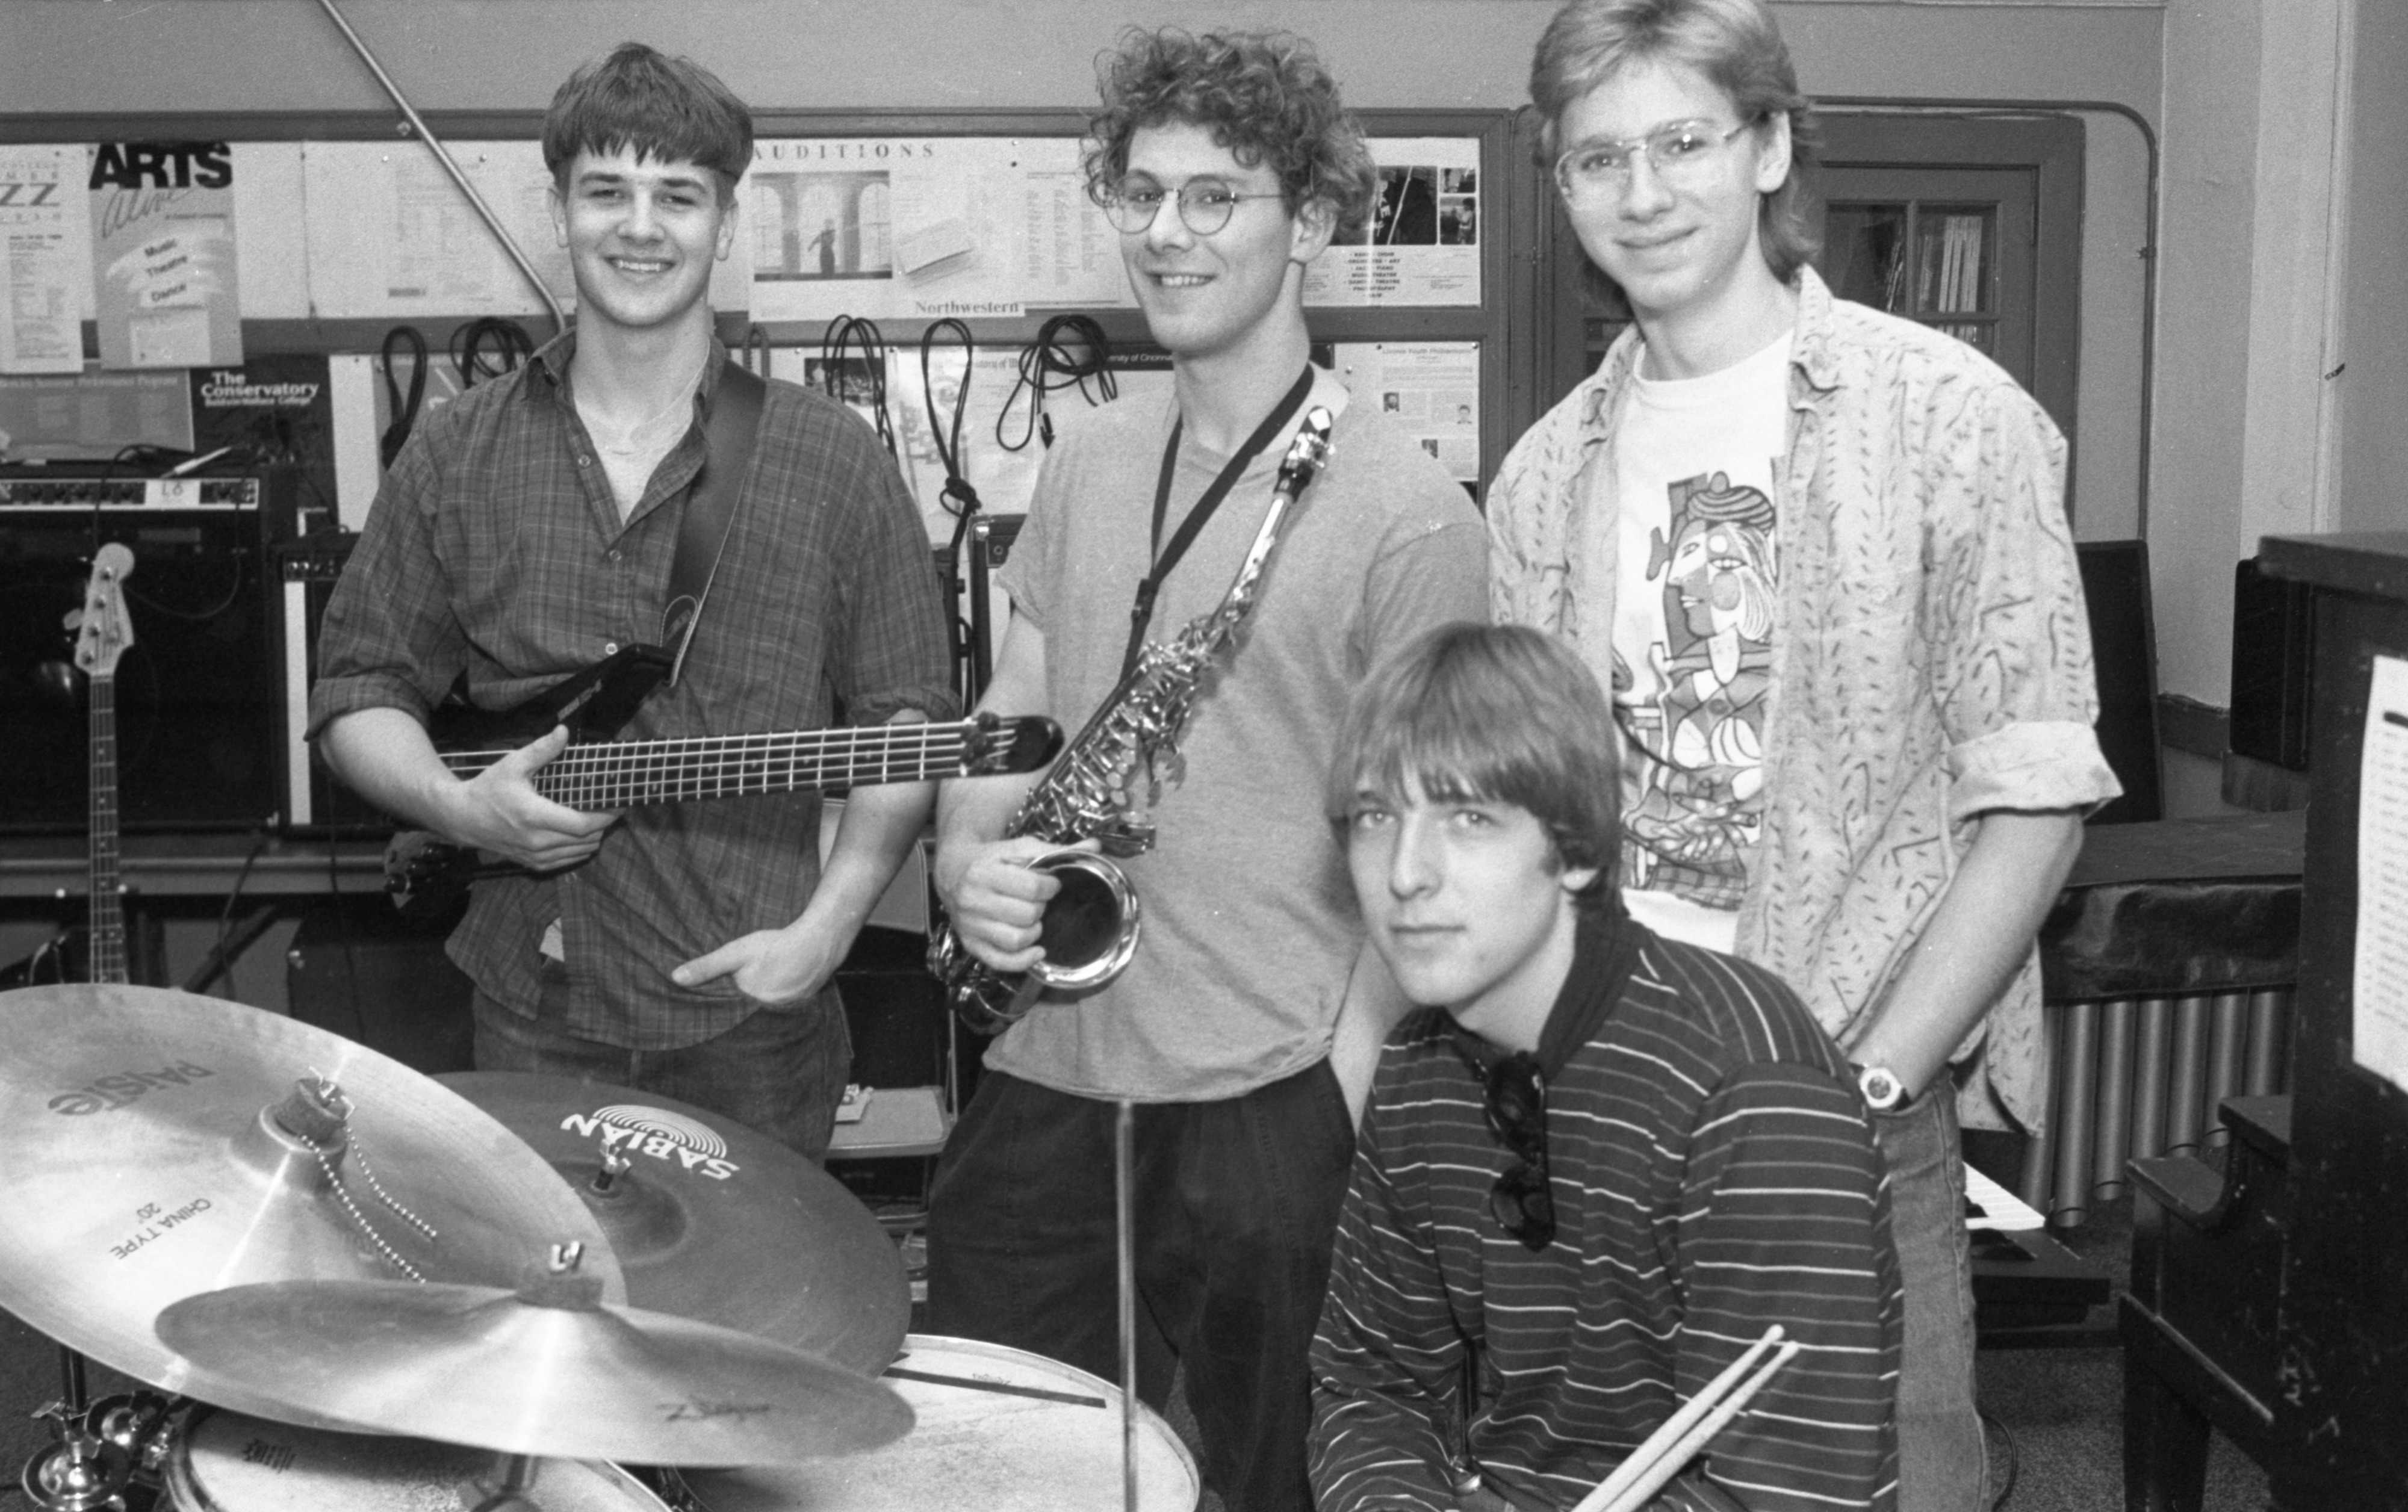 Community High School's 1:45 Jazz Ensemble, March 1990 image